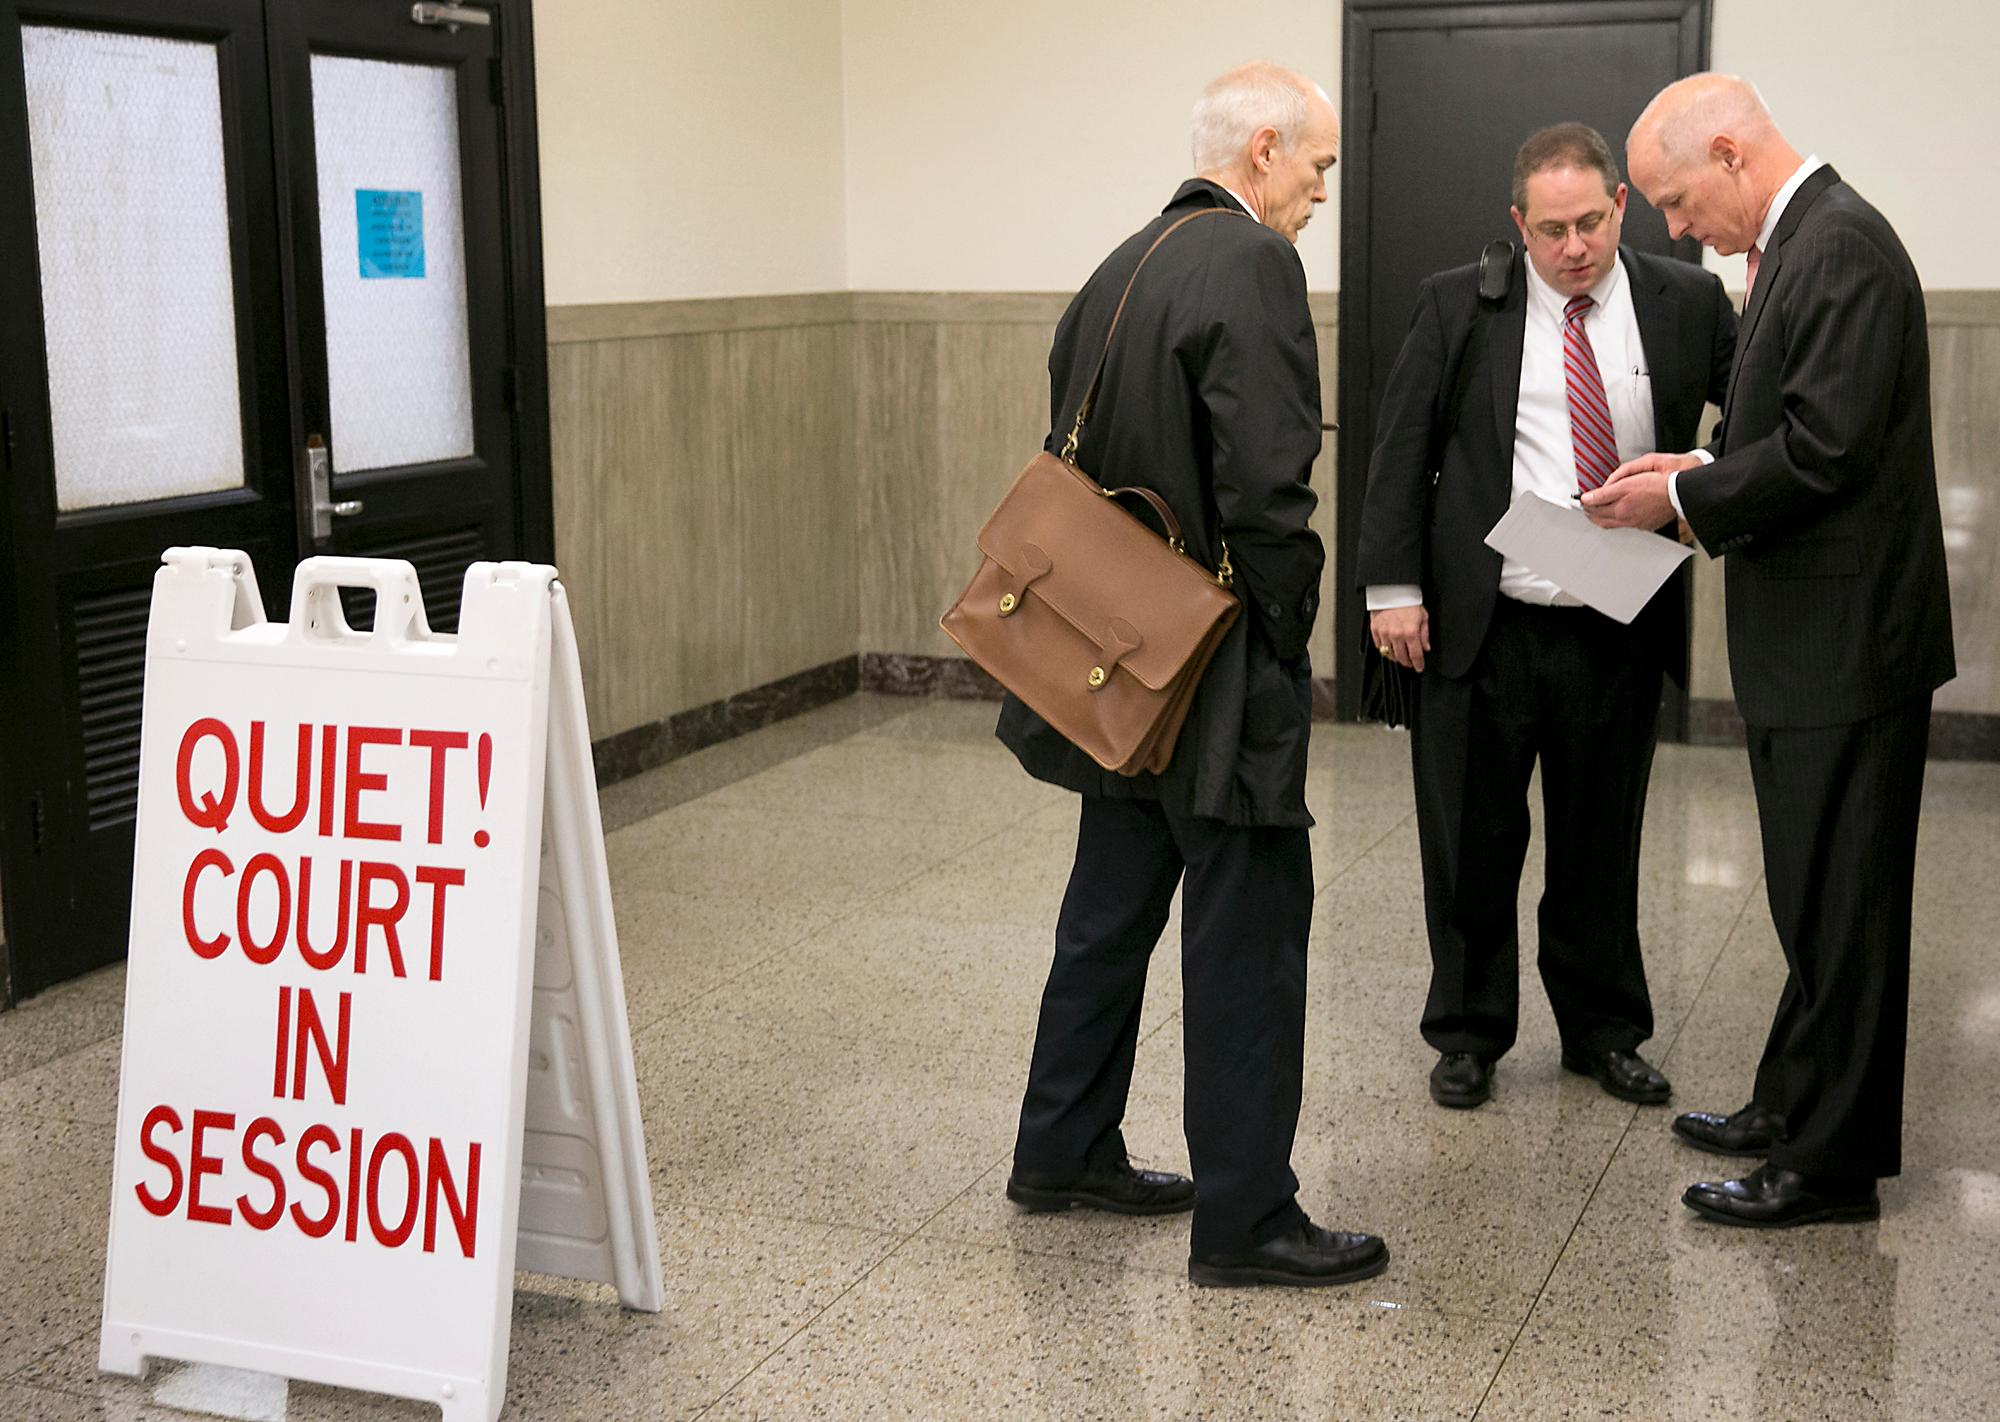 In this Feb. 3, 2015, photo, Trey Trainor, center, attorney for lobbyist James Frinzi, speaks with attorneys Clark Richards, left, and Dan Richards, right, who are representing Austin technology company 21CT in its lawsuit agains Frinzi, after a hearing at the Travis County Courthouse in Austin, Texas. The White House announced on Tuesday, Sept. 13, 2017, that President Donald Trump has appointed Trainor, a well-known election-law lawyer based in Austin, to the Federal Election Commission. (Ralph Barrera/Austin American-Statesman via AP)